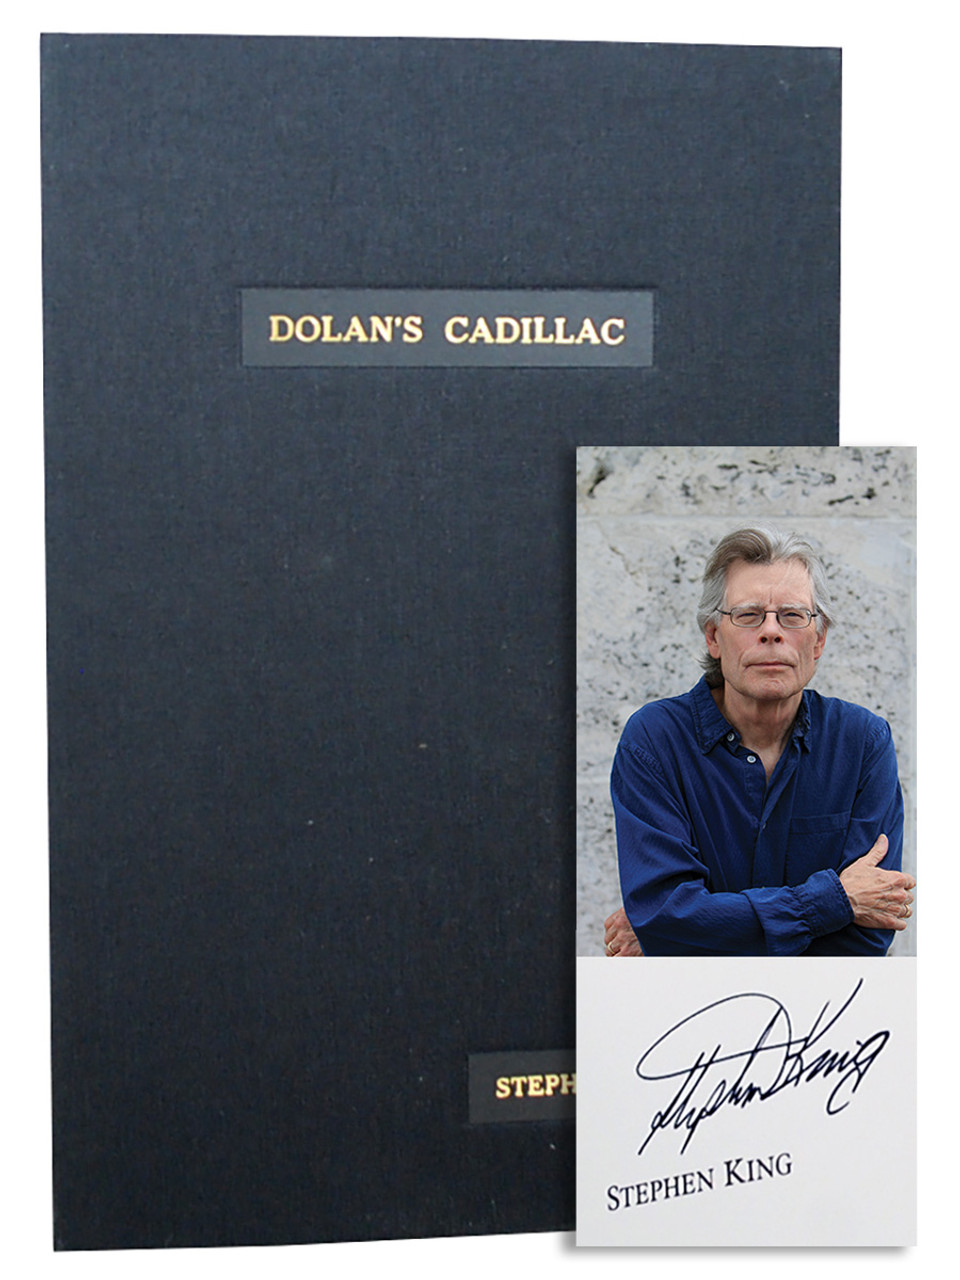 """Stephen King """"Dolan's Cadillac"""" Signed First Edition, Deluxe Limited Edition No. 246 of 250, Custom Presentation Box"""